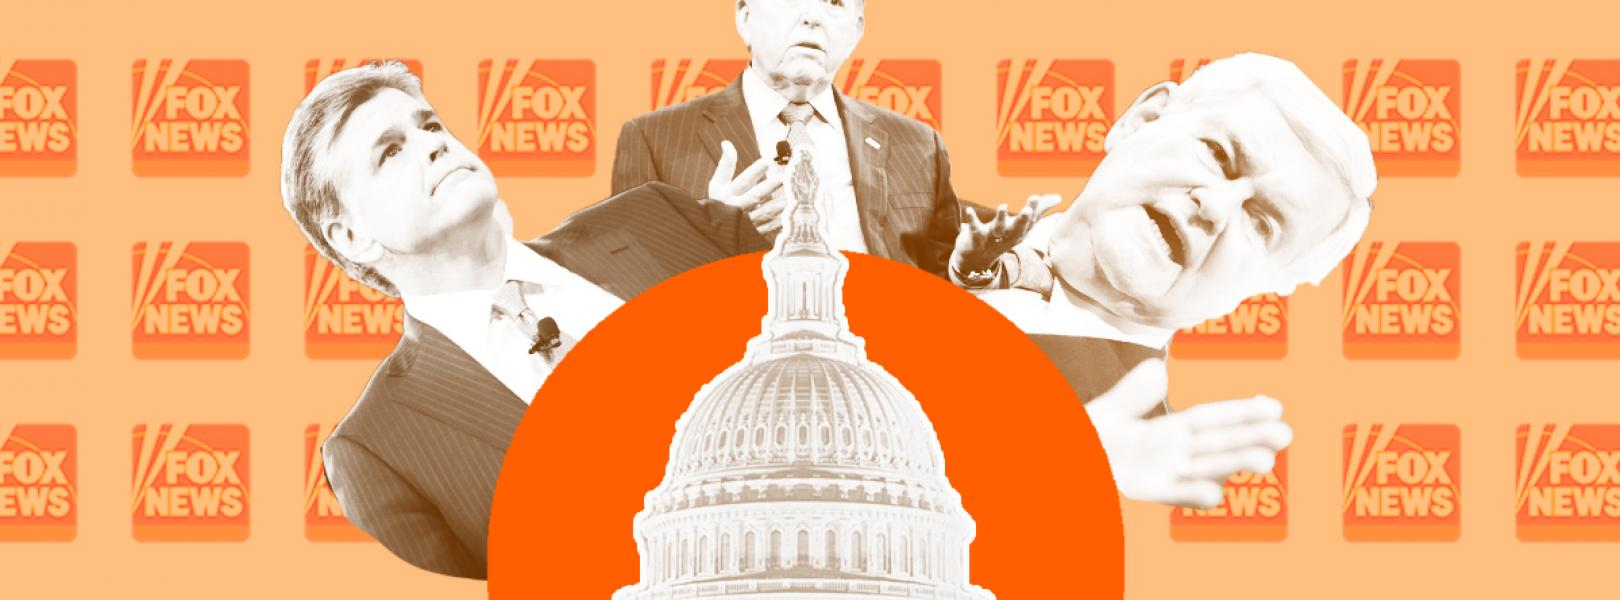 Fox News is misrepresenting the process of impeachment to cover for Trump's obstruction